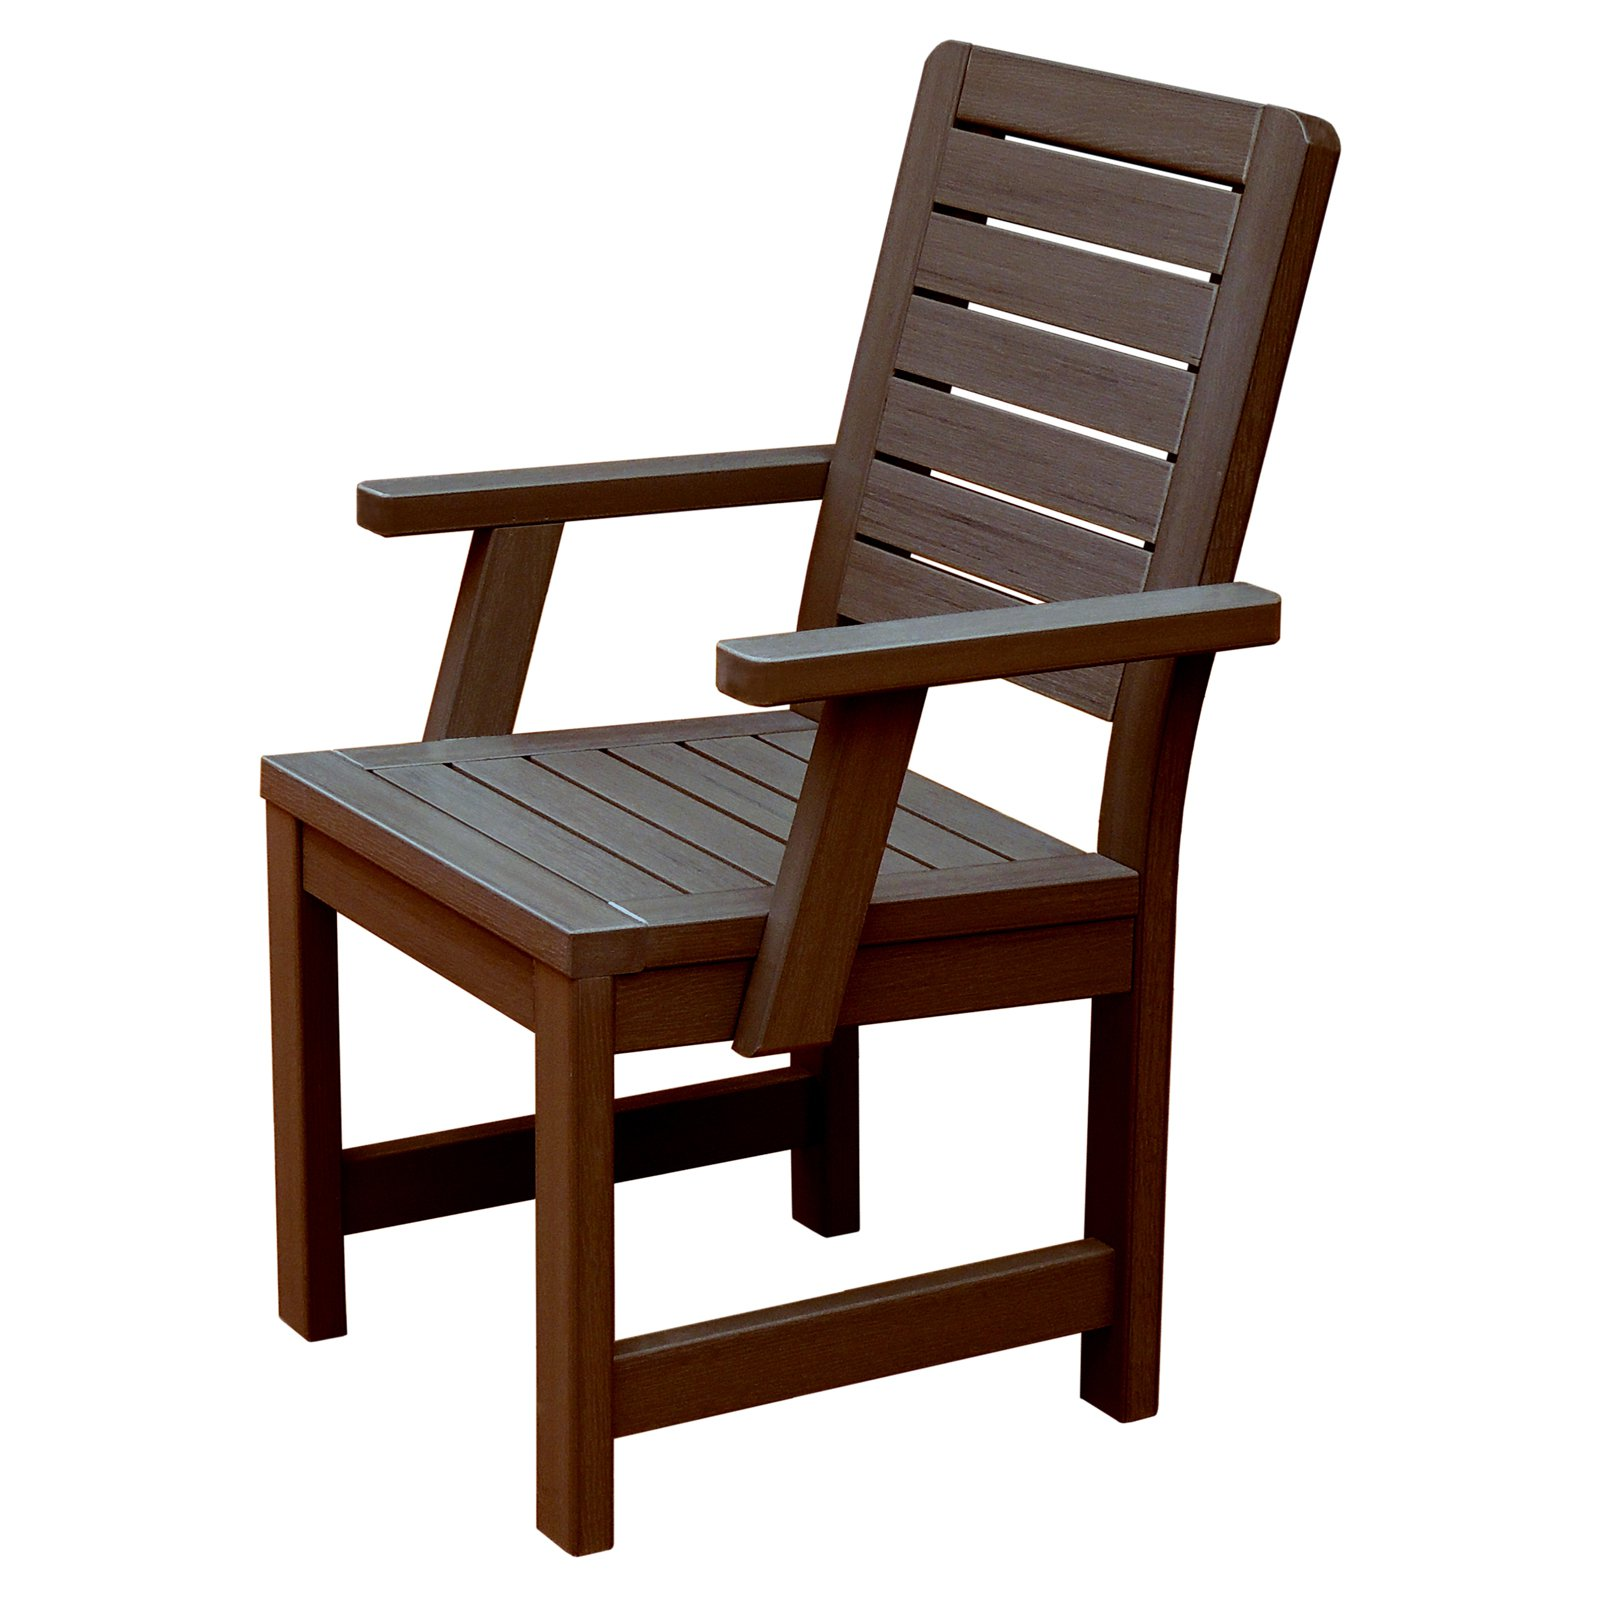 highwood® Weatherly Recycled Plastic Patio Dining Chair